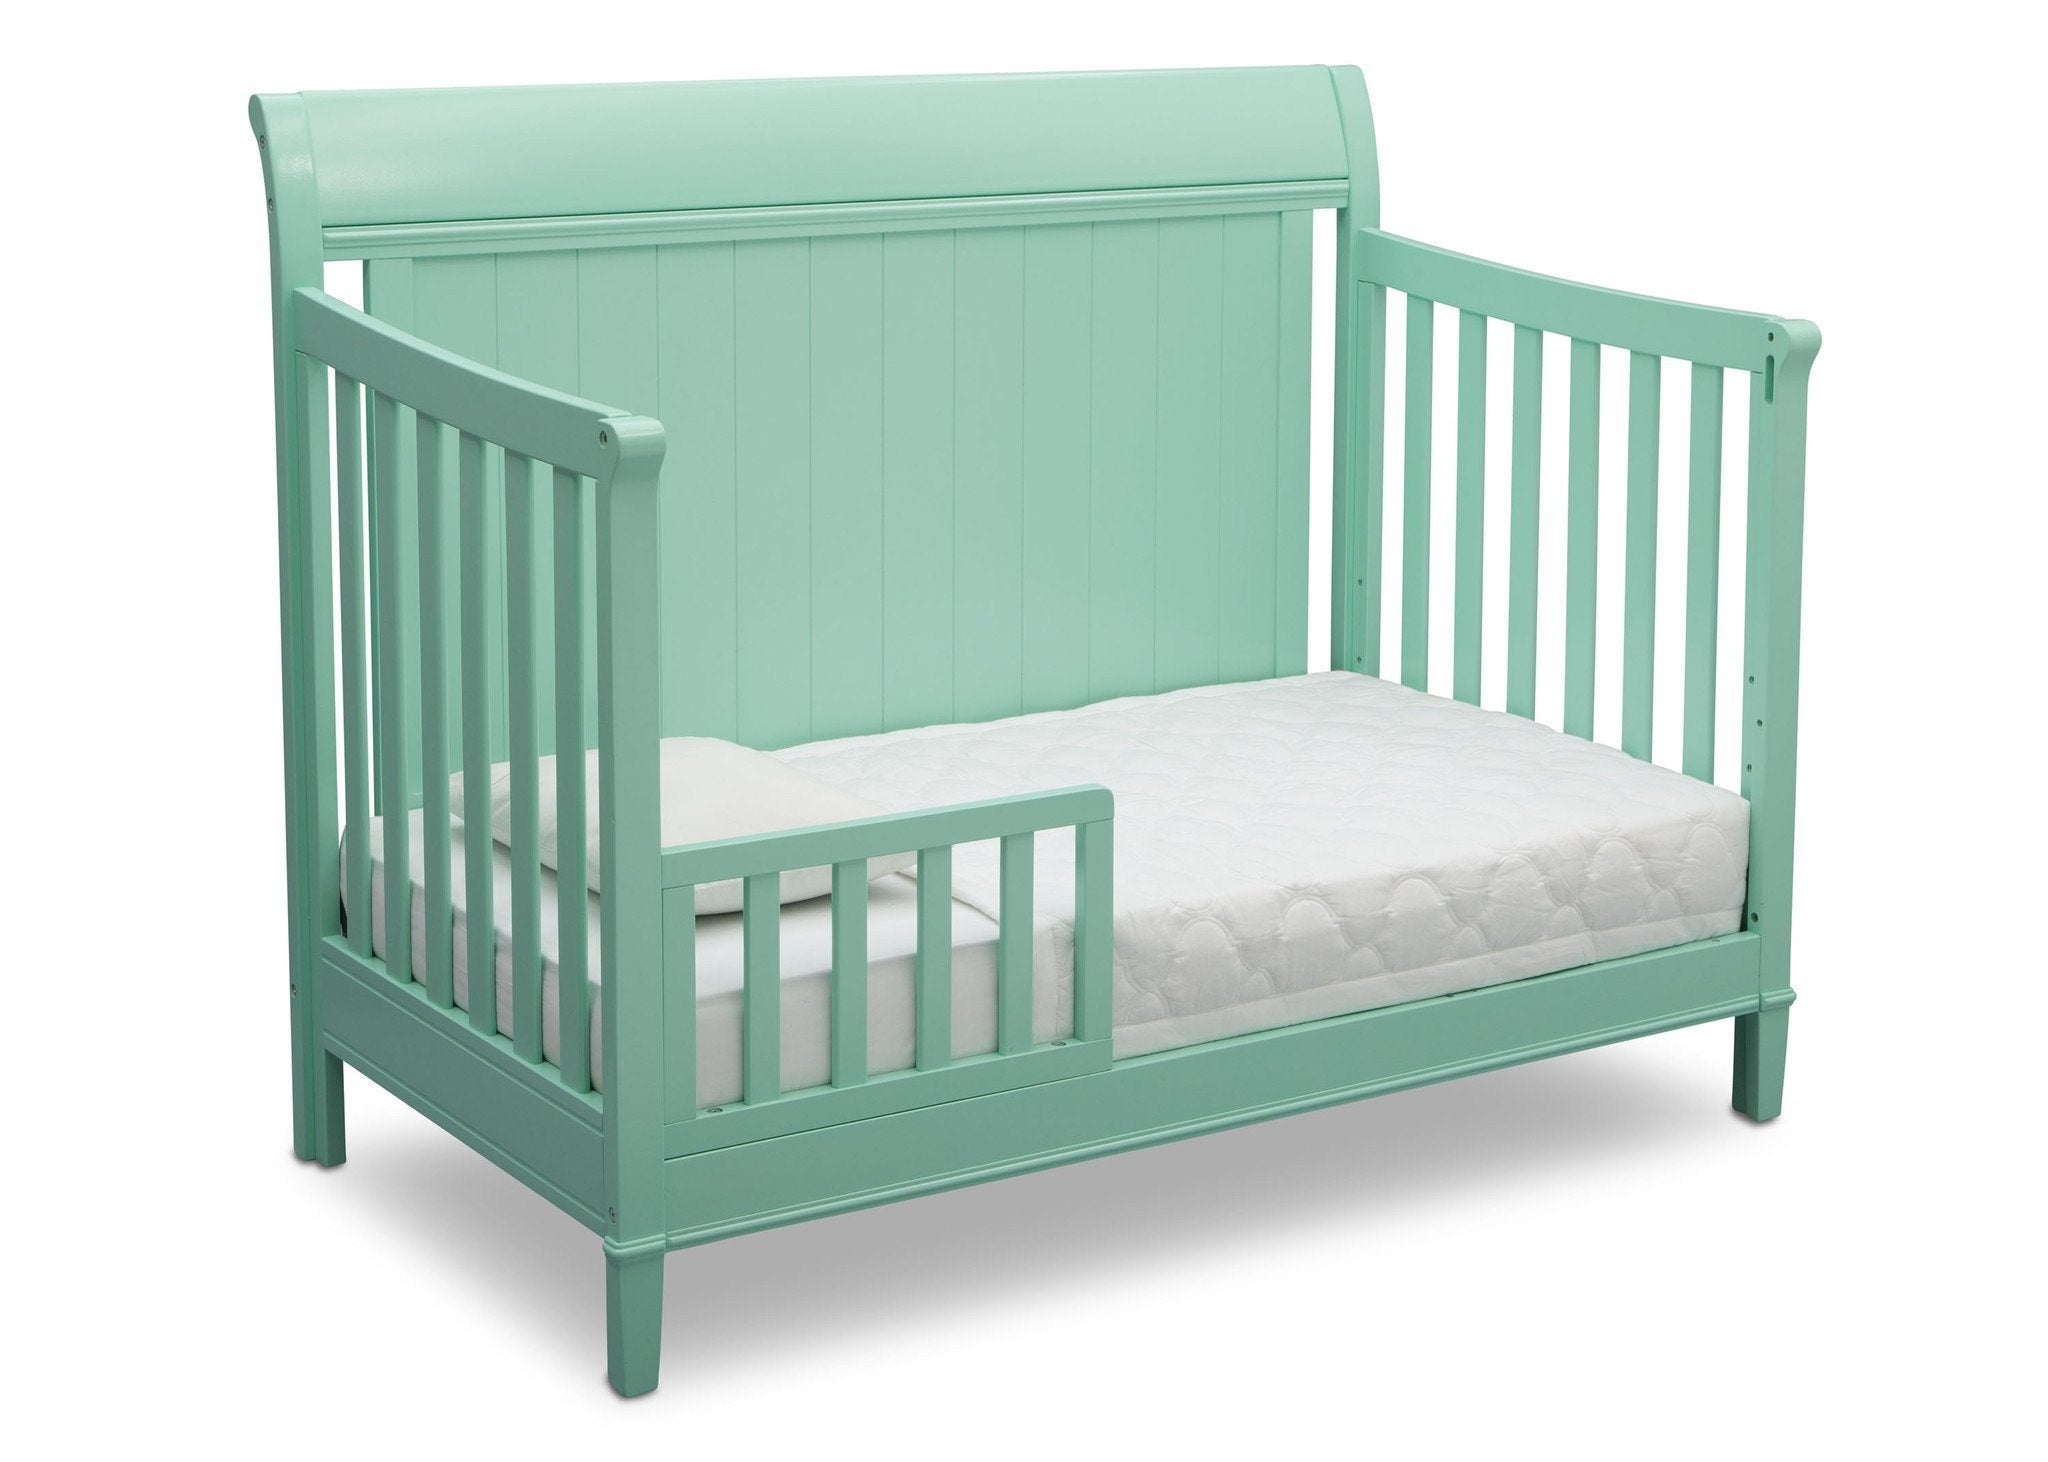 Delta Children Aqua (347) New Haven 4-in-1 Crib, Angled Conversion to Toddler Bed, e4e